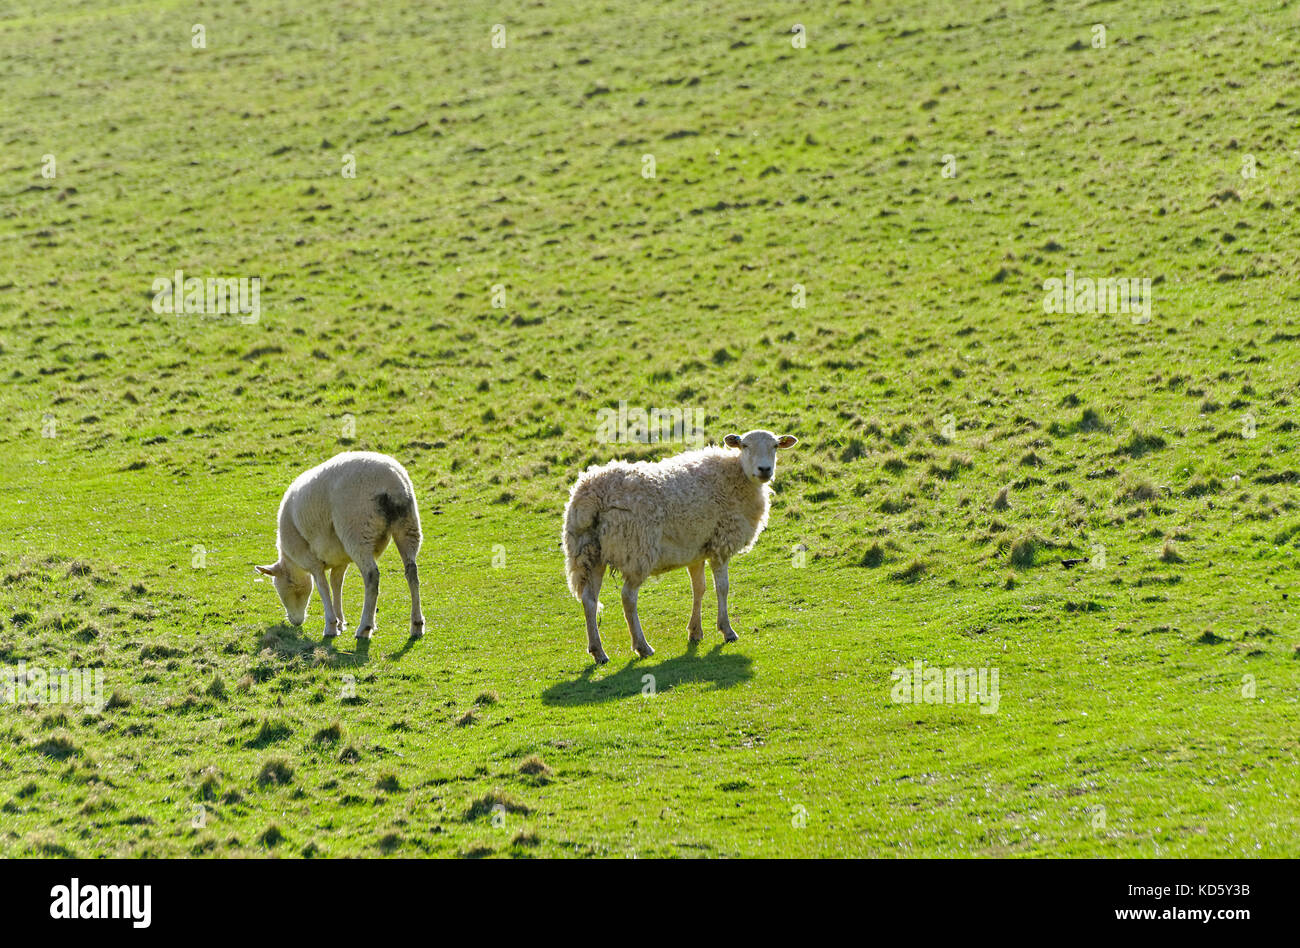 TWO SHEEP IN A FIELD IN DEVON ENGLAND UK - Stock Image